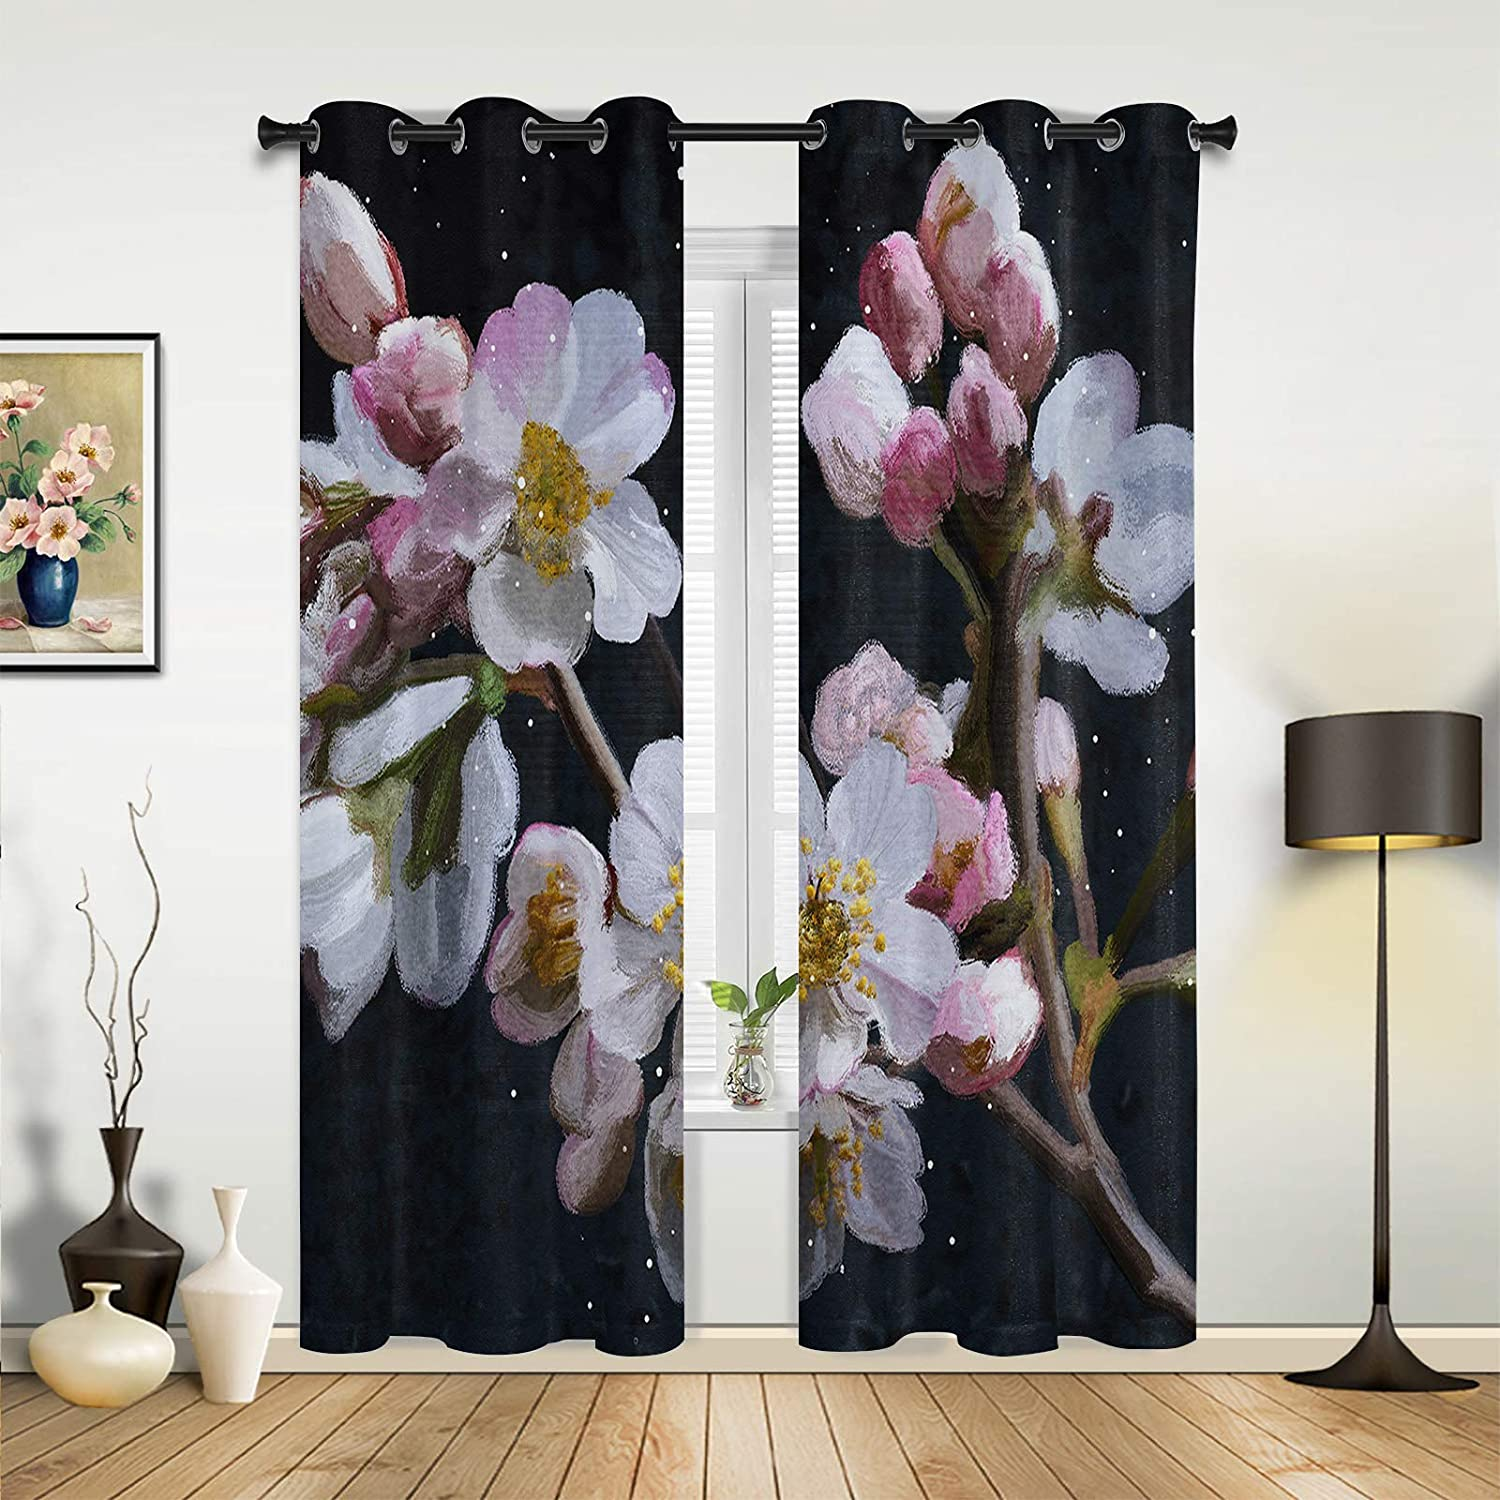 Window Sheer Curtains for Bedroom Topics on TV P Beautiful Industry No. 1 Spring Room Living